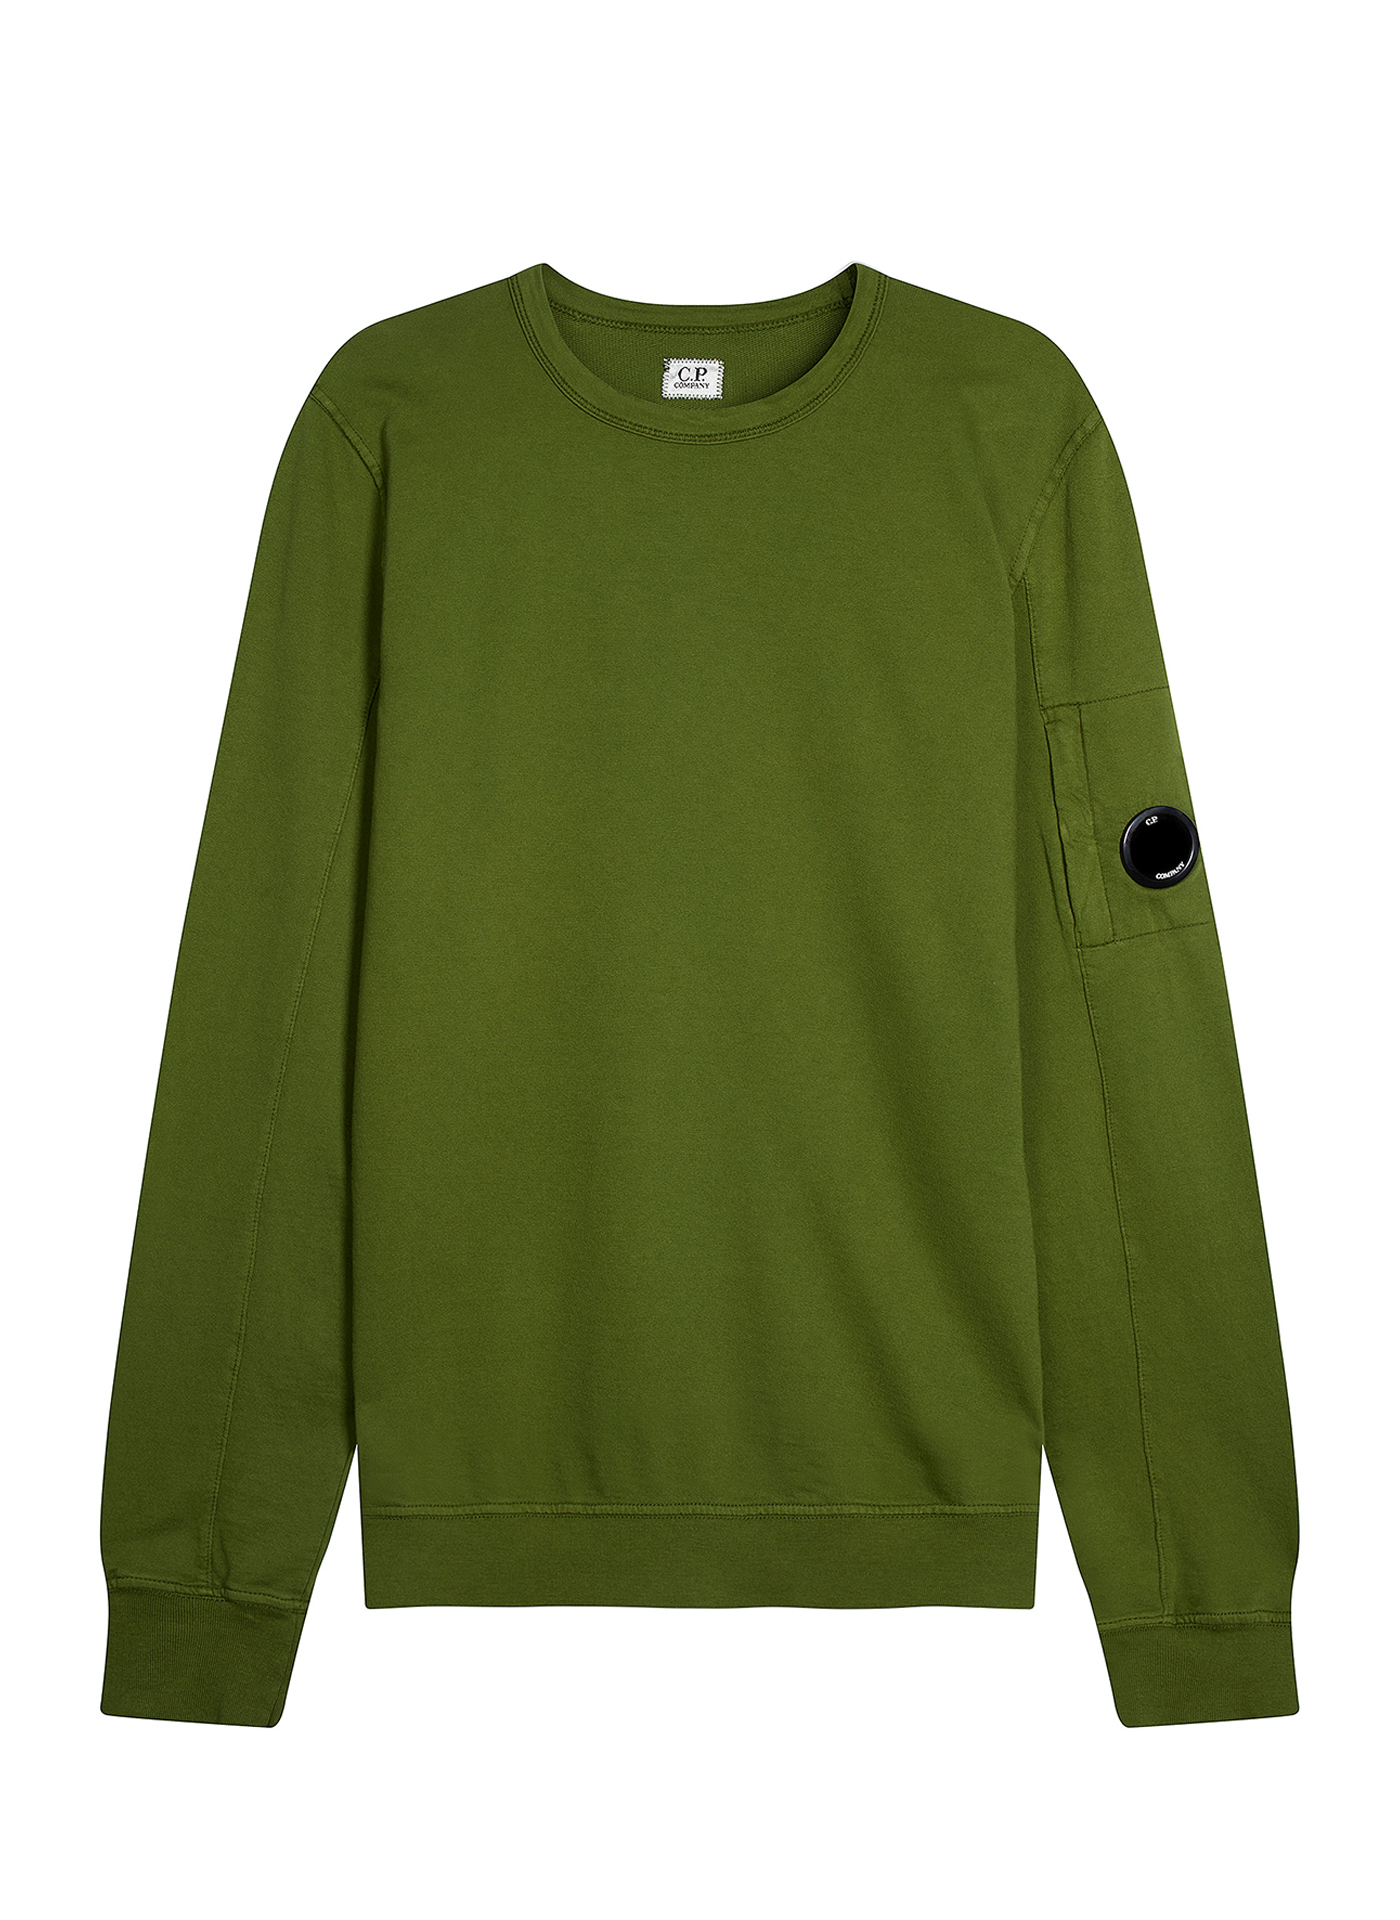 Front shot of green C.P. Company jumper on white background